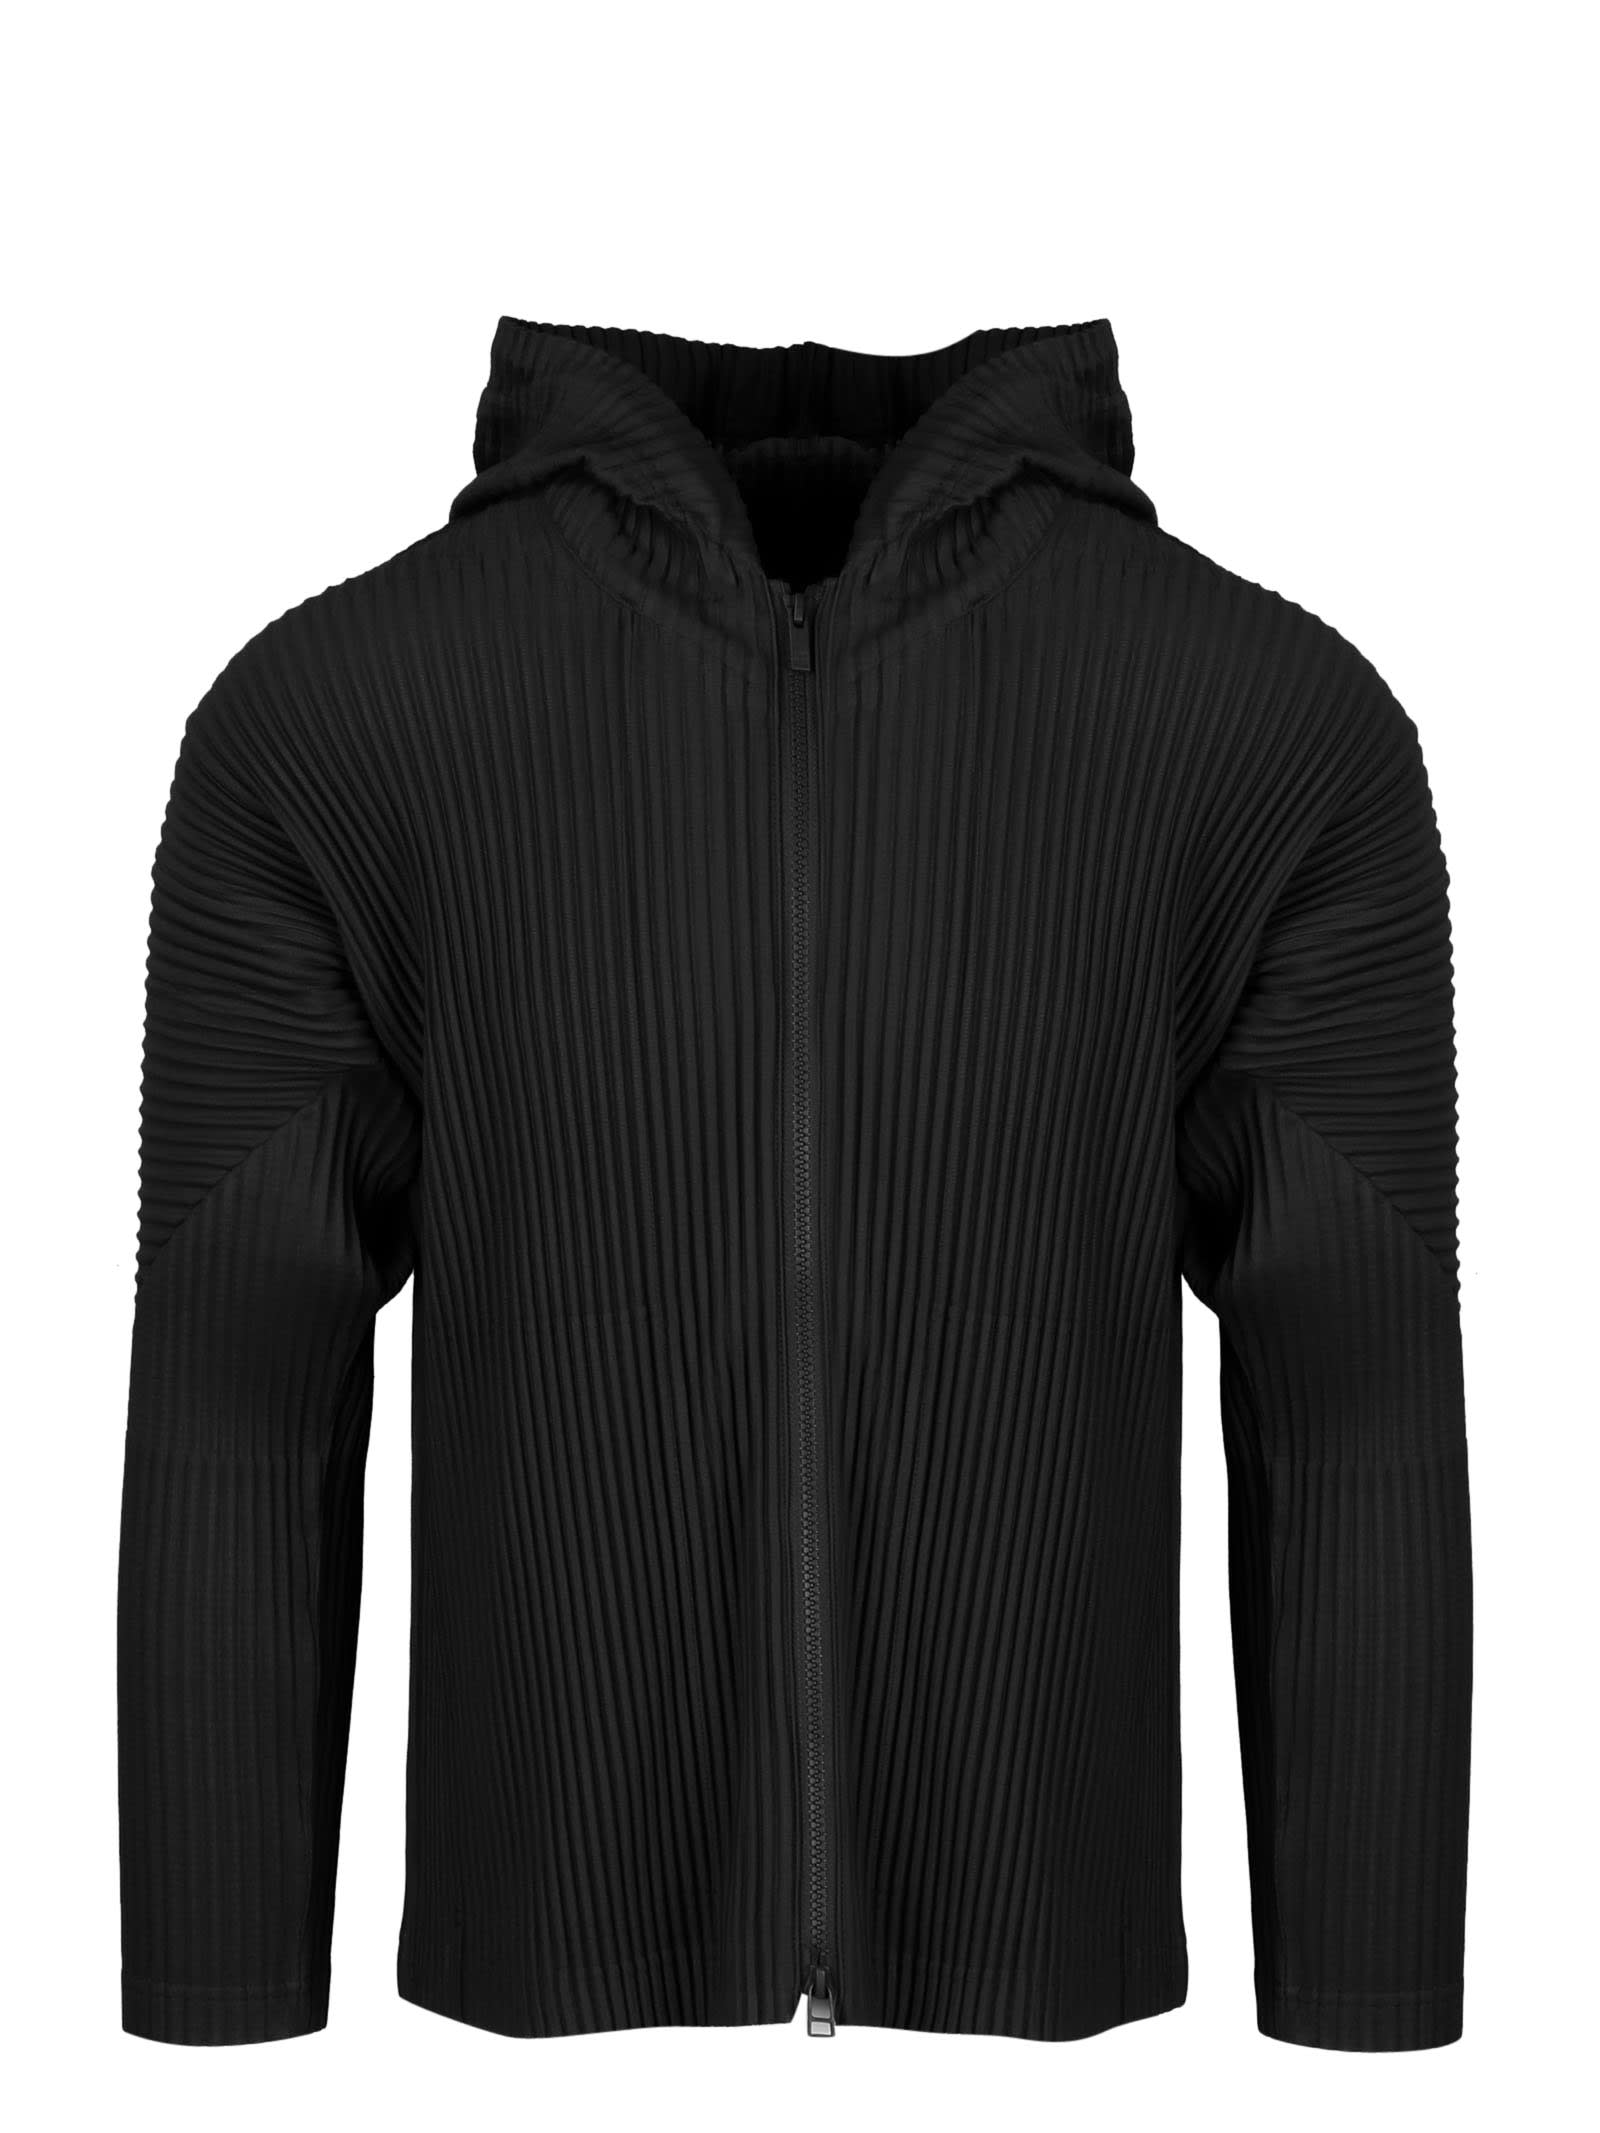 Issey Miyake Full Zip Pleated Hoodie from Issey MiyakeComposition: 100% Polyester